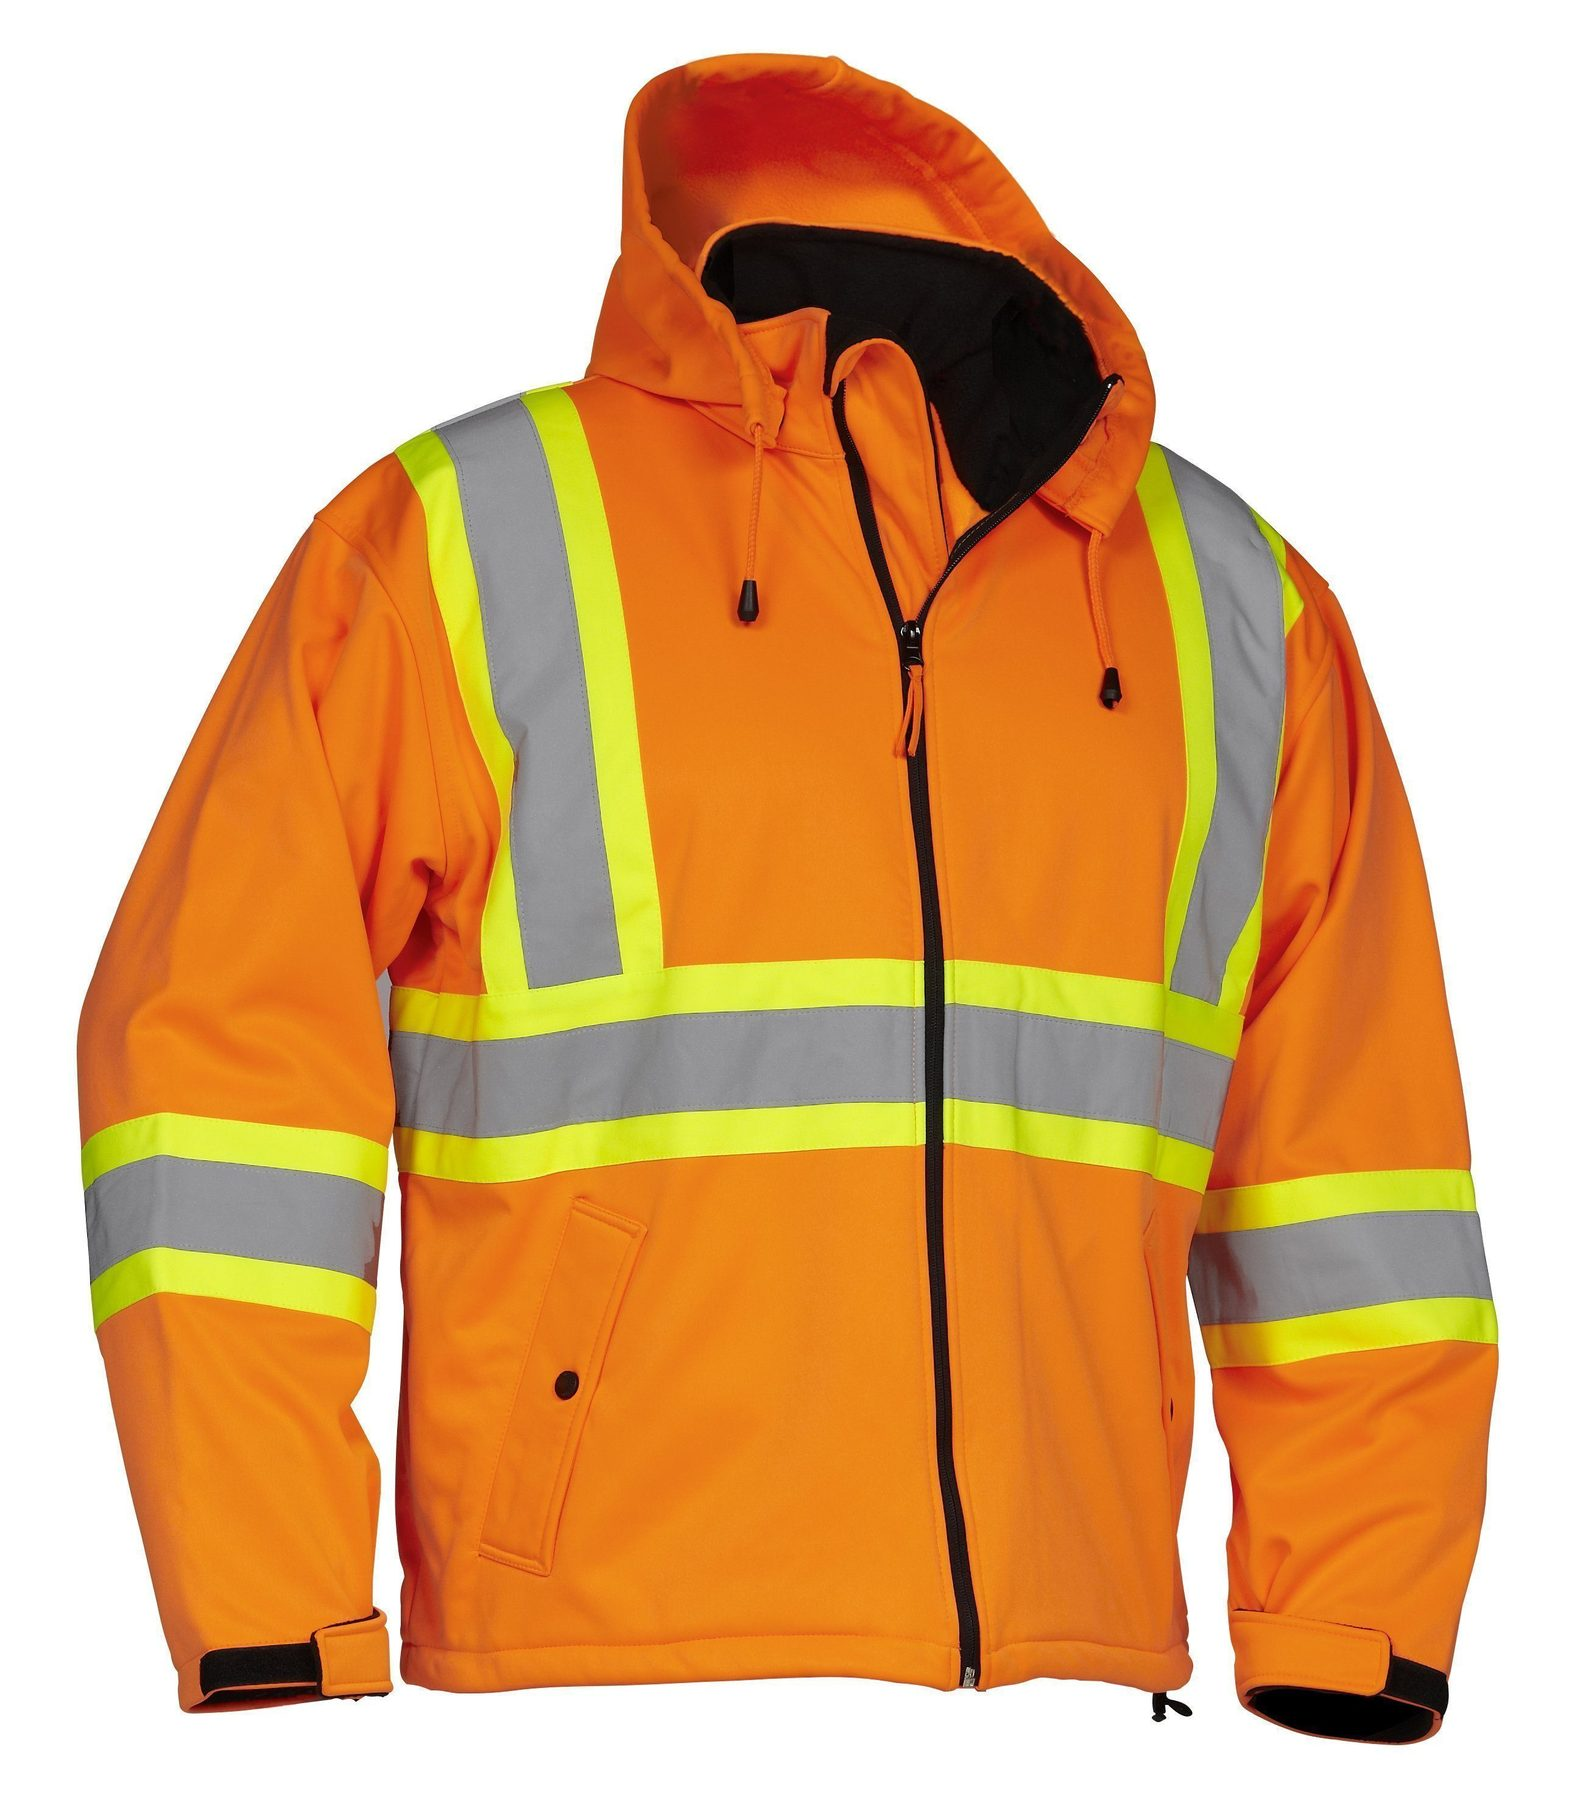 Forcefield Hi-Vis Safety Softshell Rain Jacket 023-EN147OR